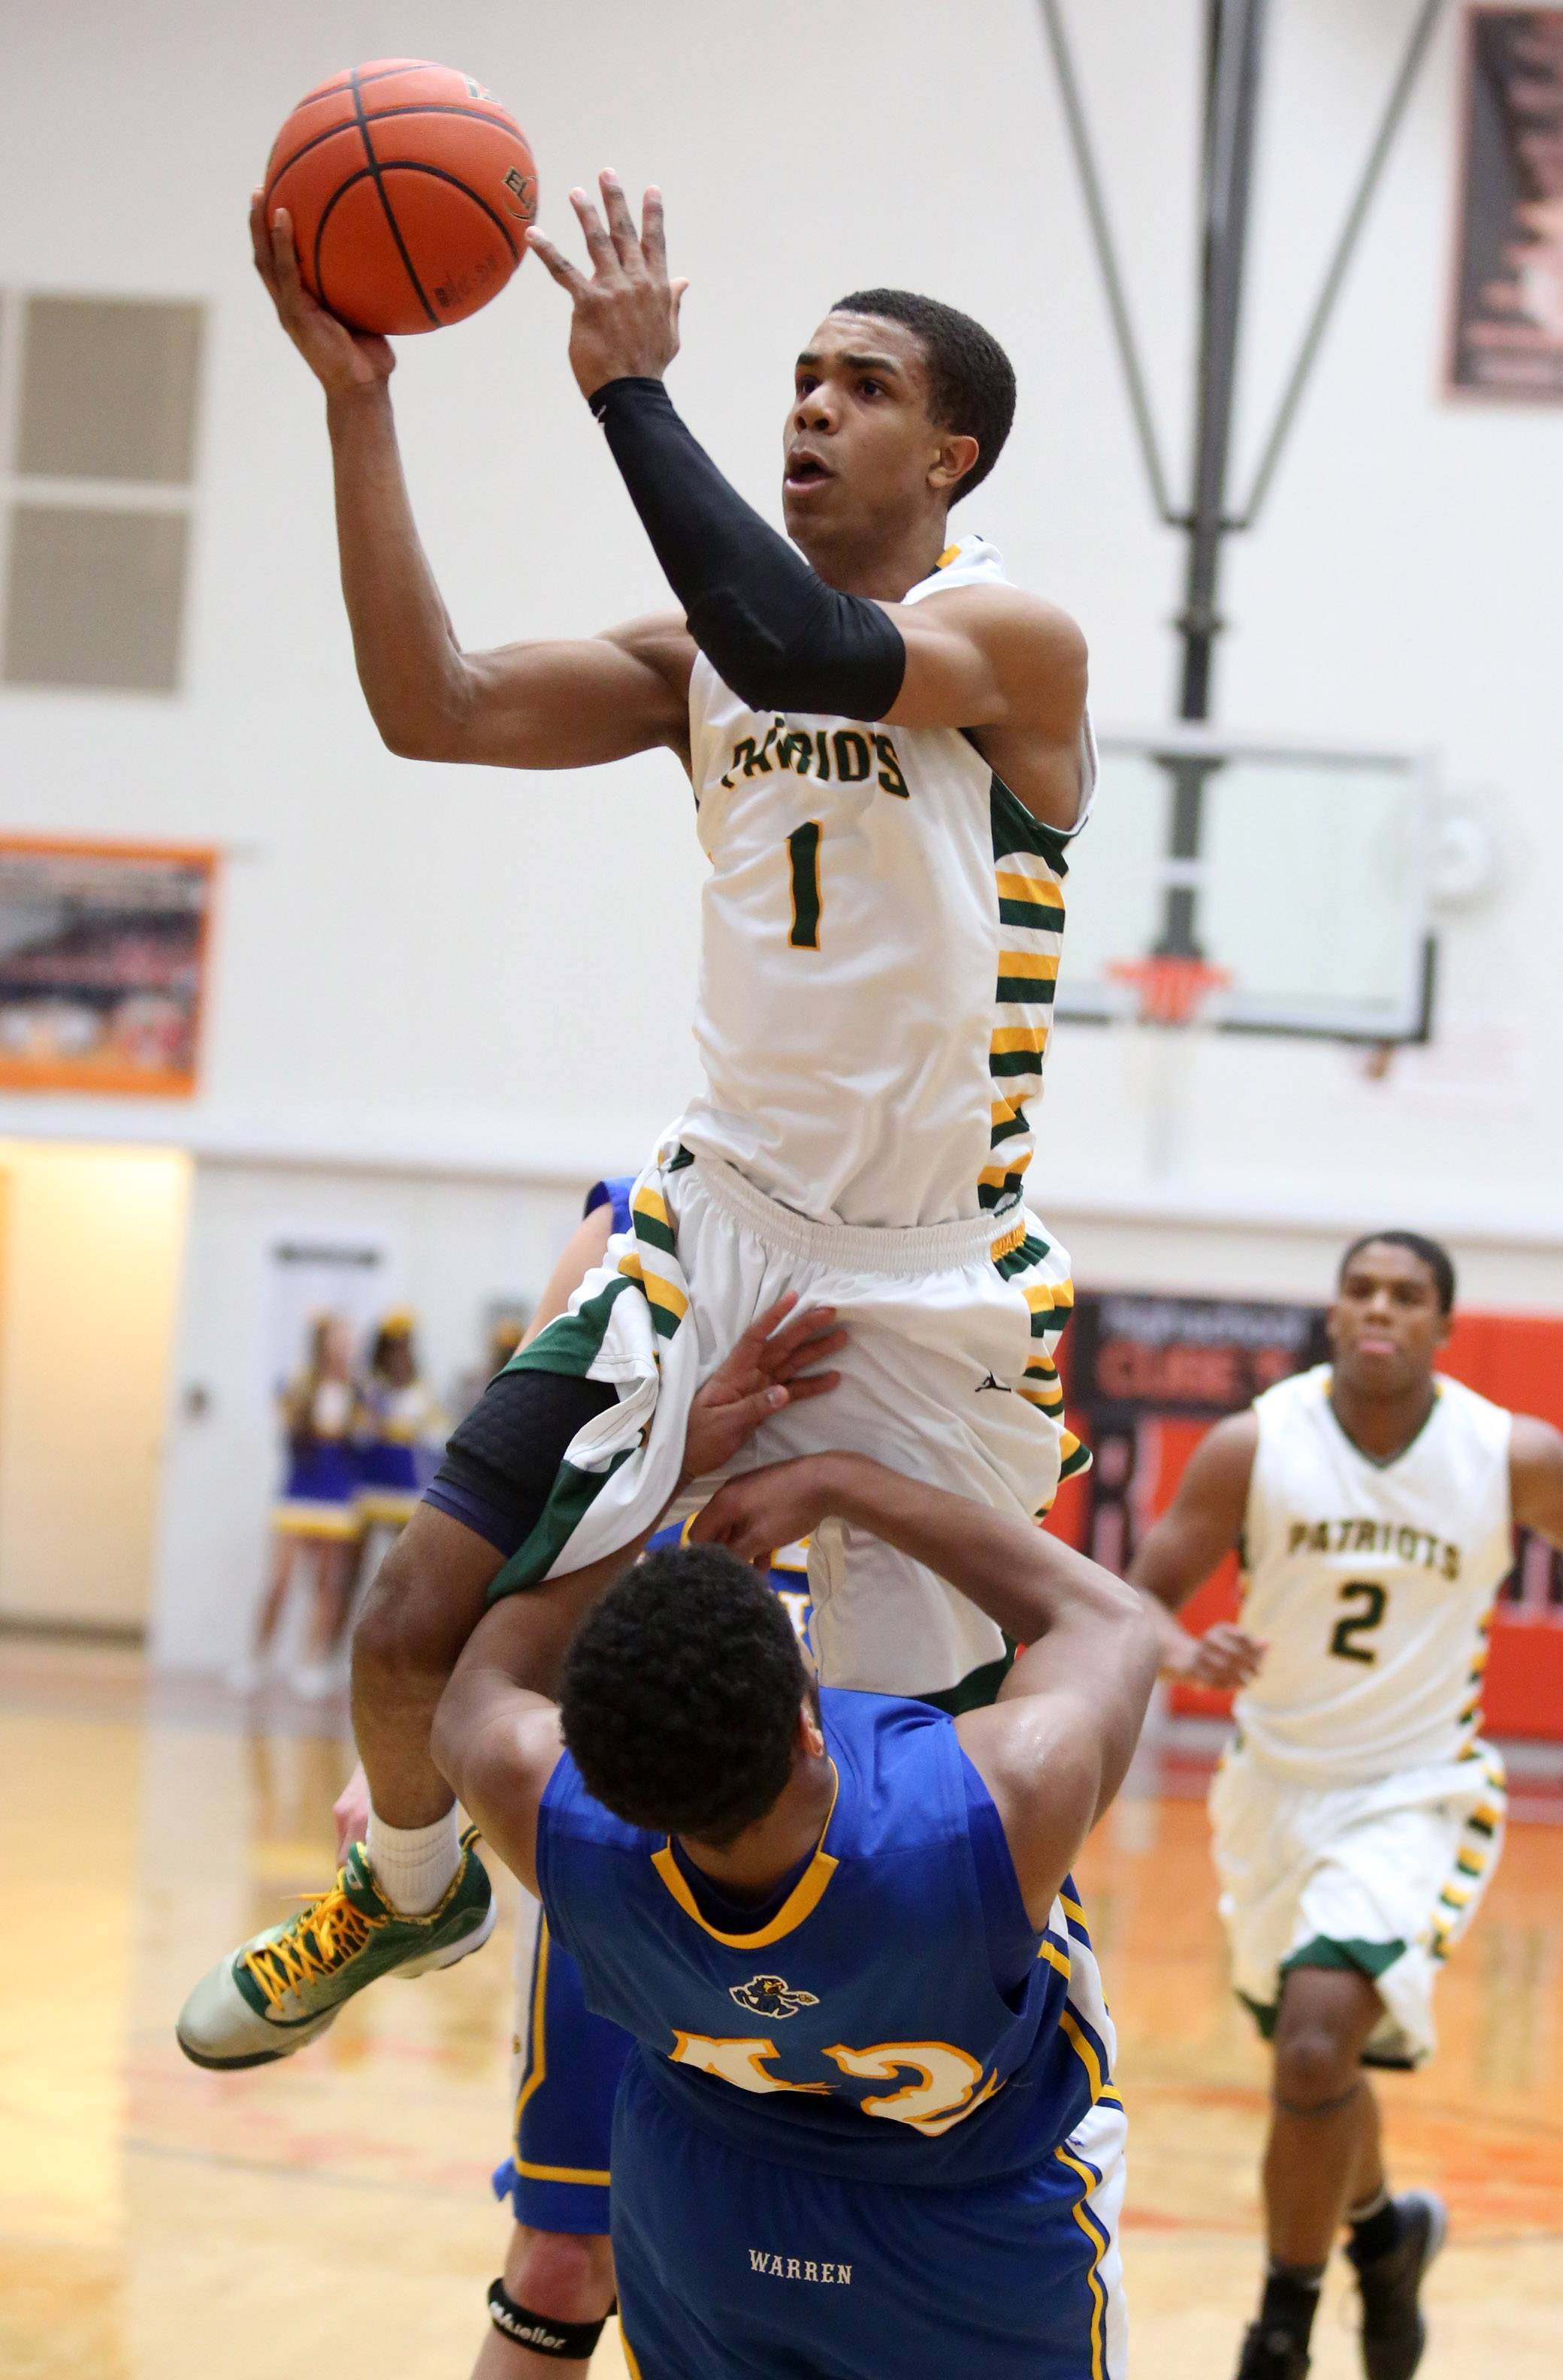 Stevenson guard Connor Cashaw shoots over Warren defender Caleb Reams .